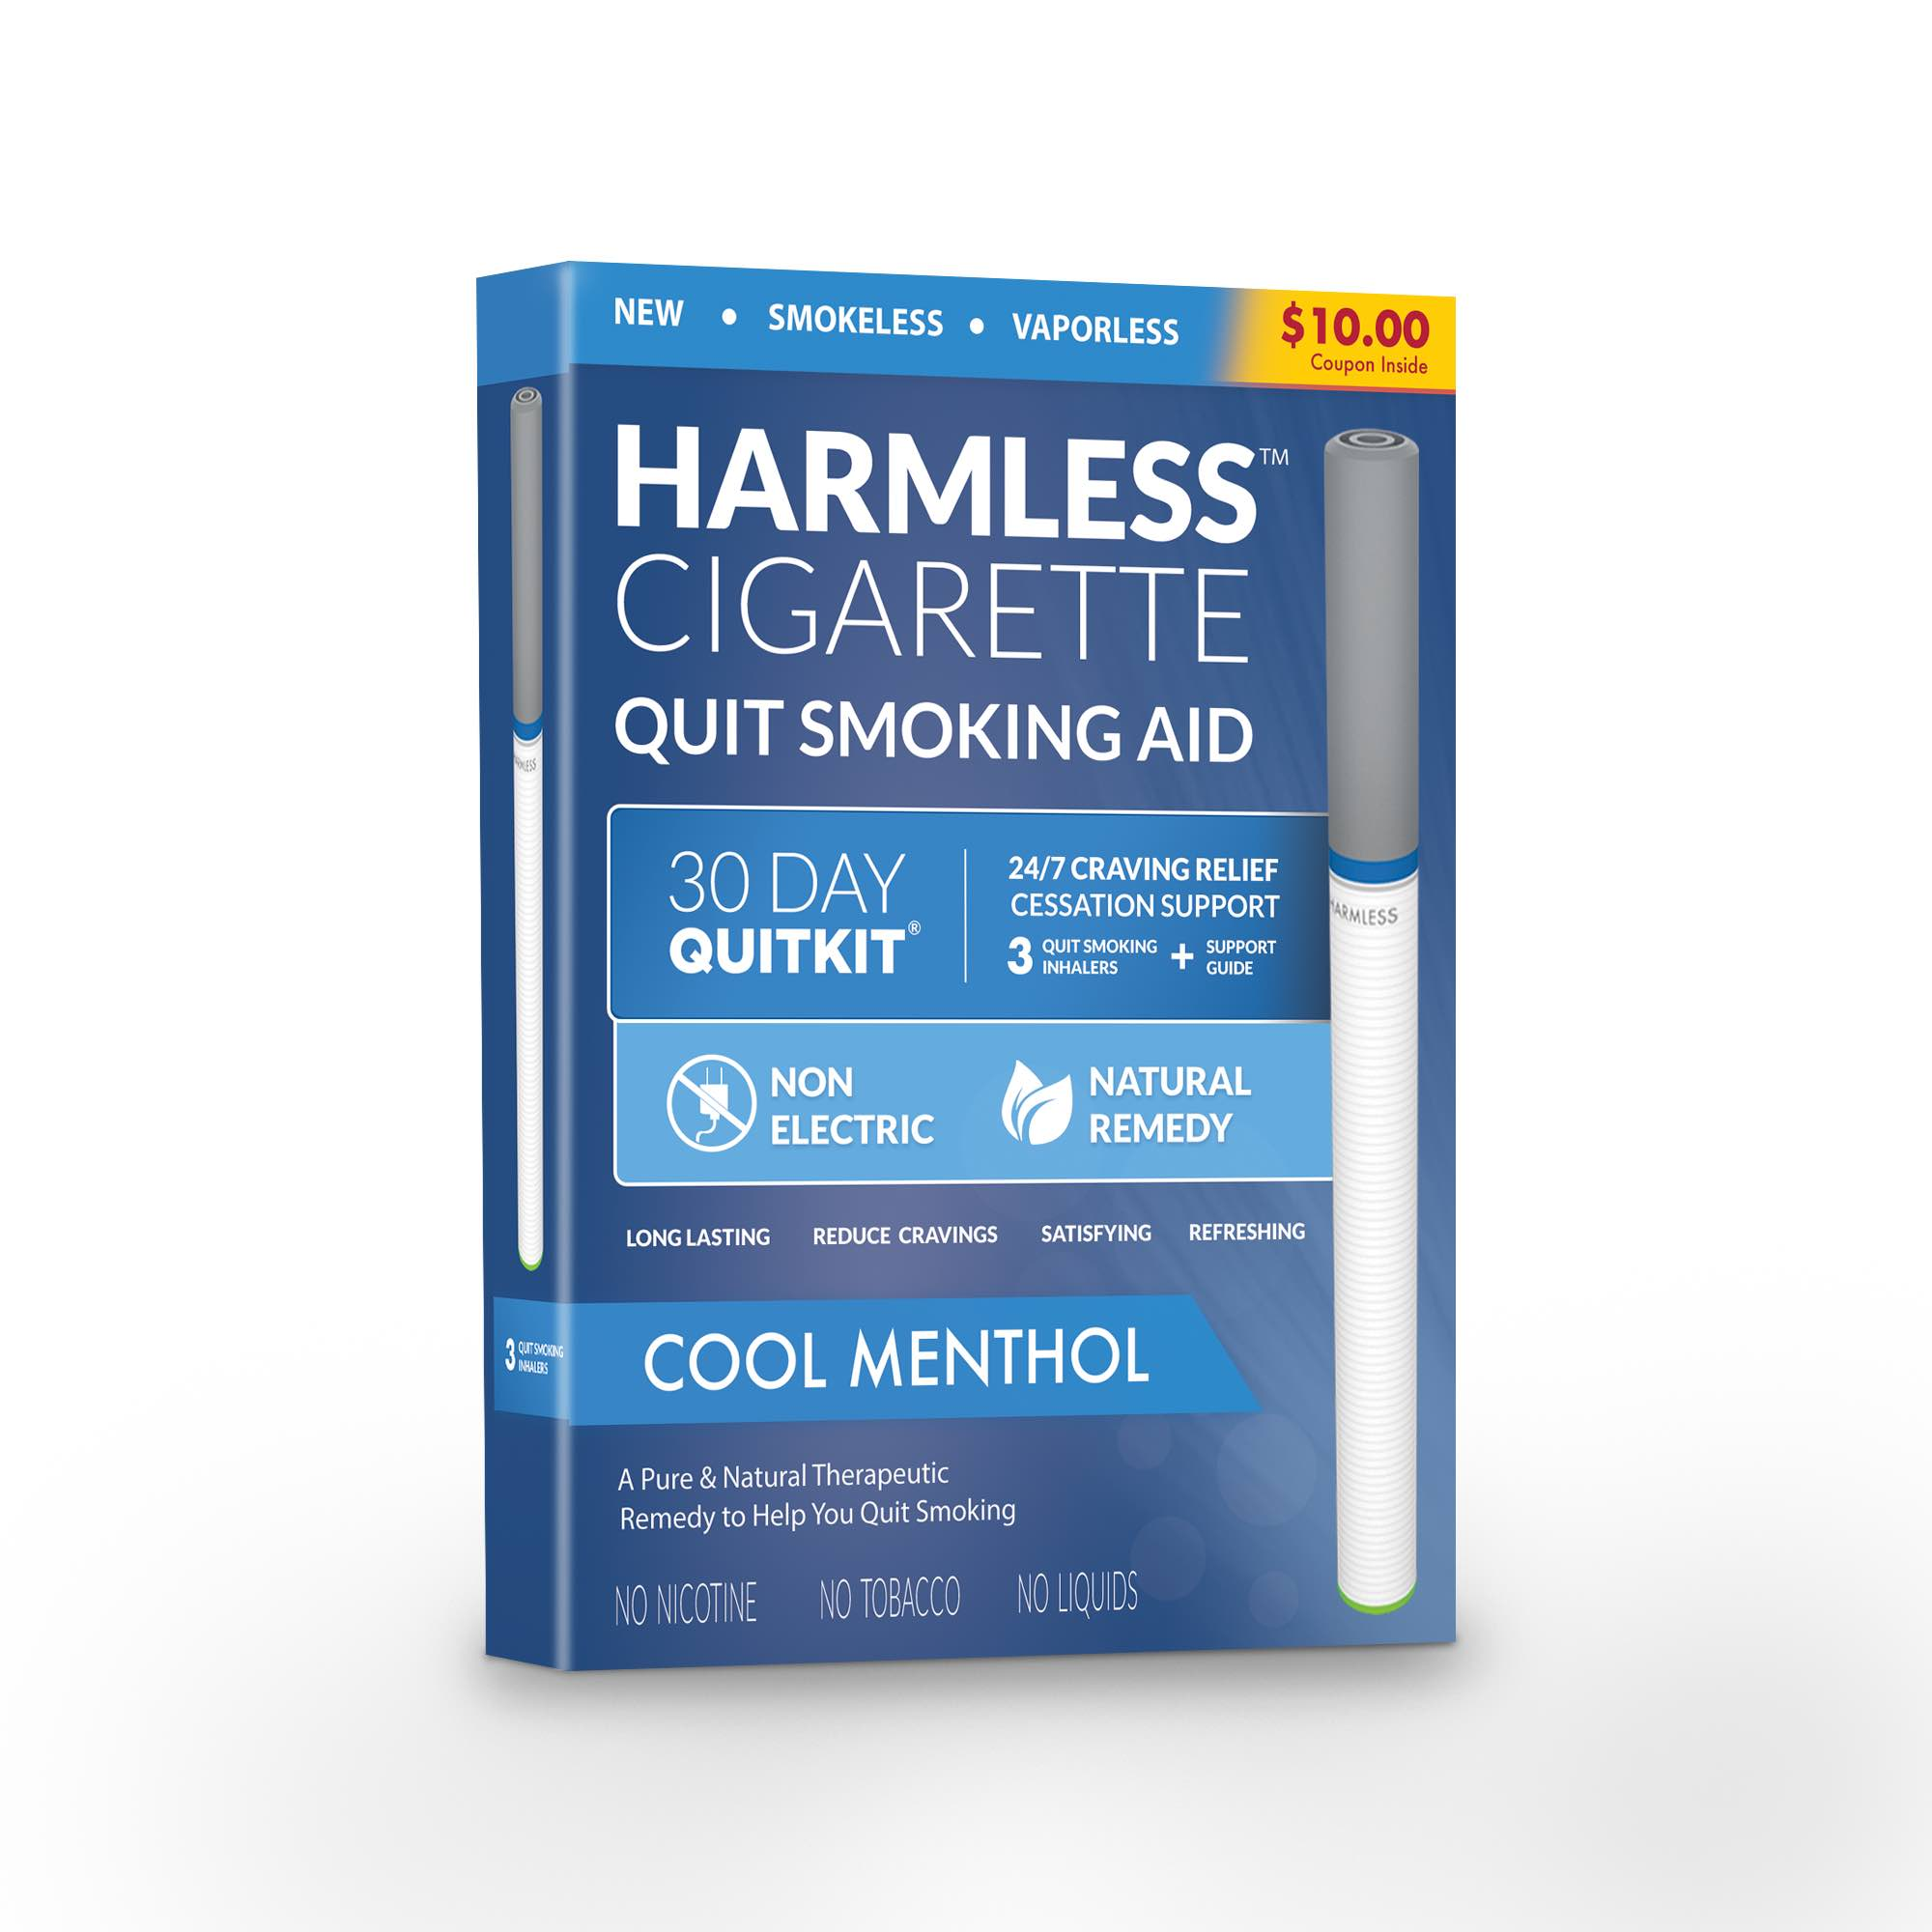 30 Day Quit Kit / Stop Smoking Aid To Help Quit Smoking / Best Stop Smoking Product / Therapeutic Quit Smoking Product.